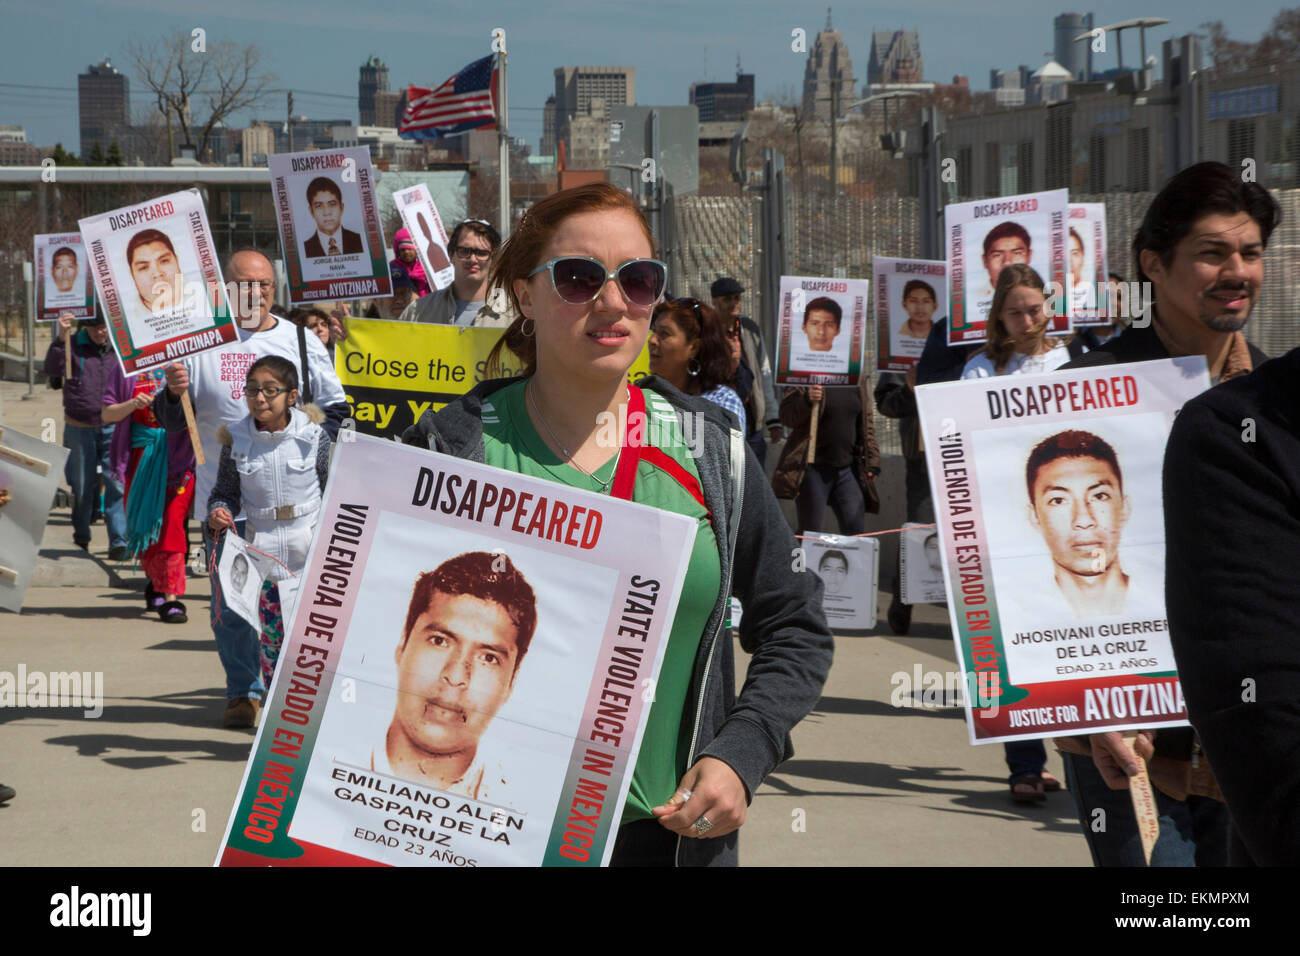 Detroit, Michigan, USA. 12th April, 2015. Demonstrators marched through Detroit's Mexican-American neighborhood - Stock Image